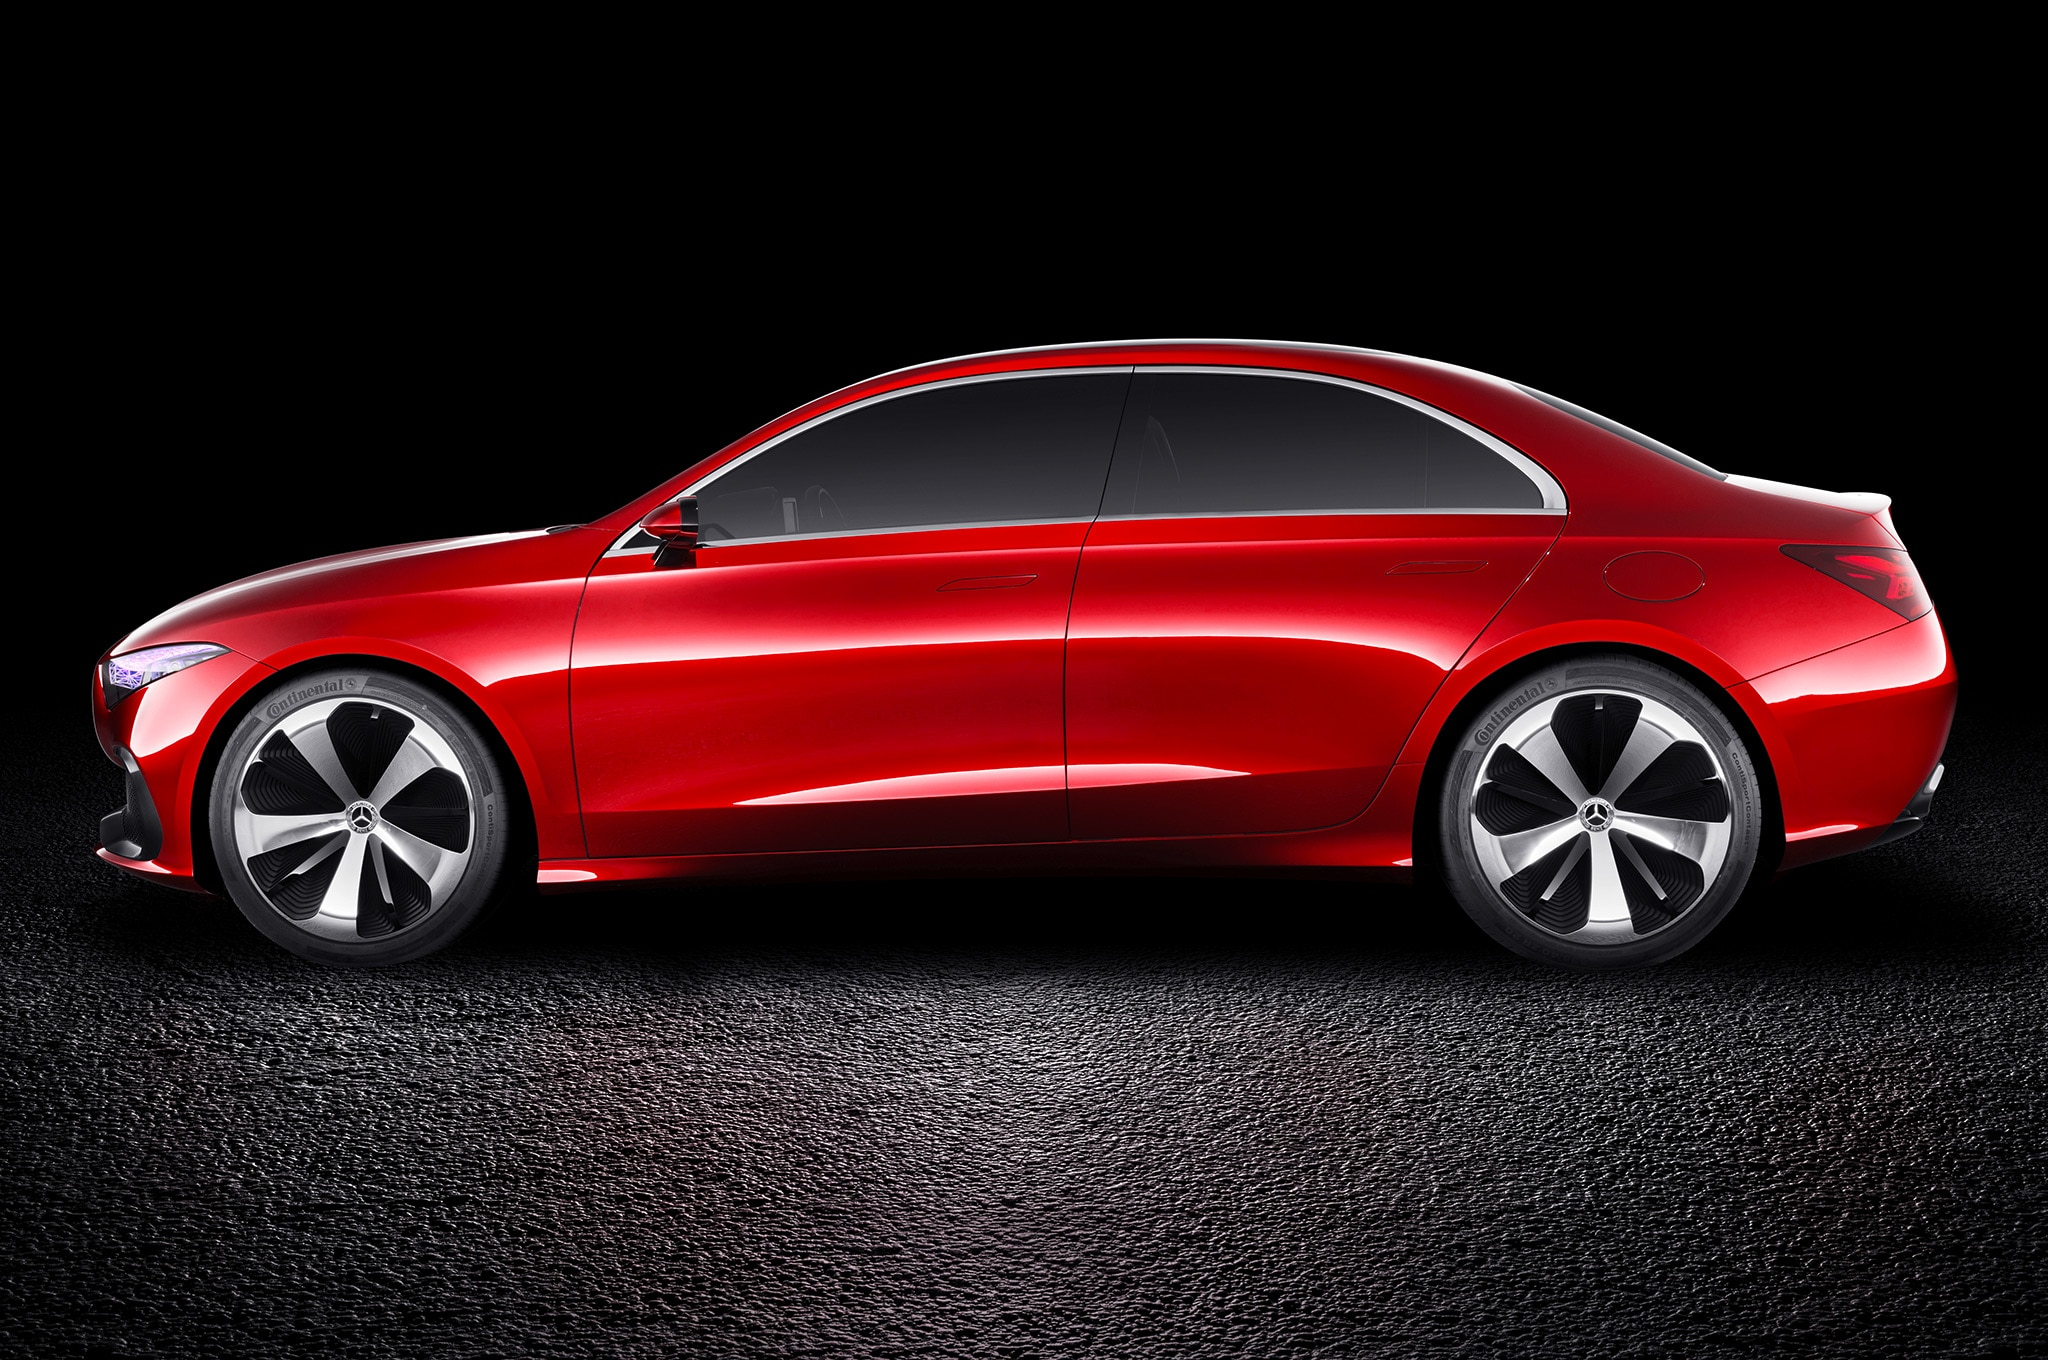 Mercedes Benz Concept A Sedan side view